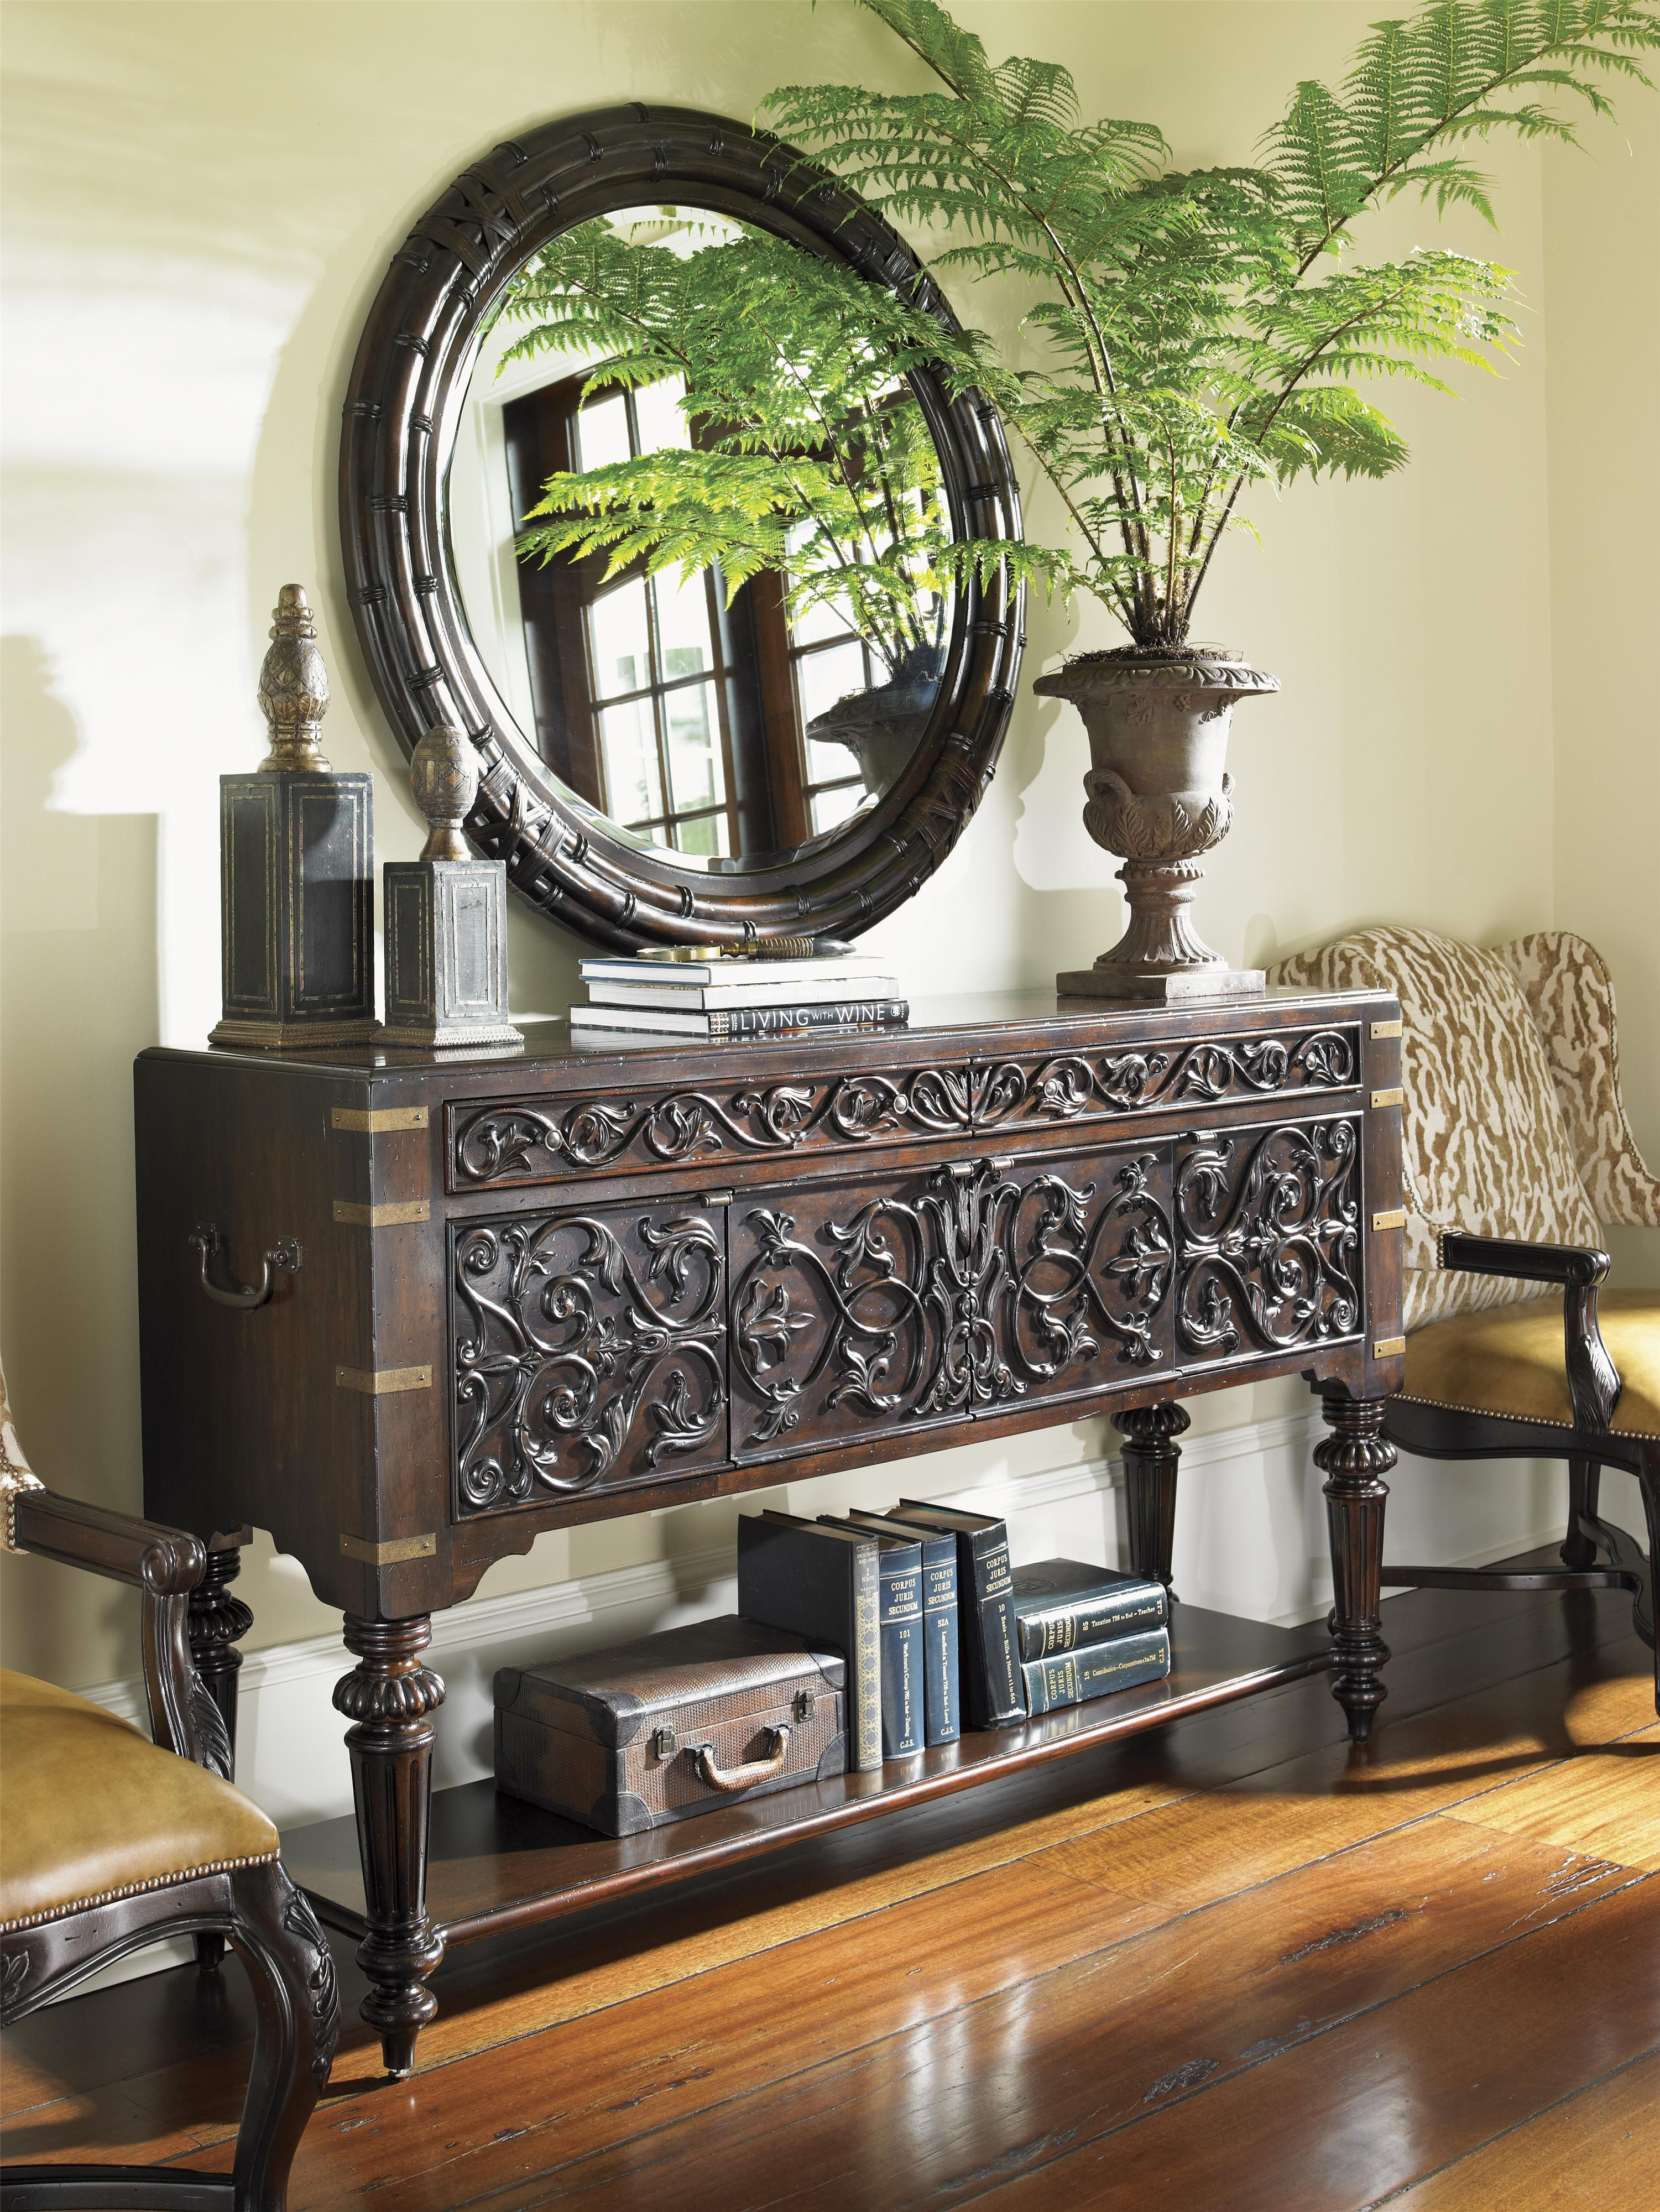 Tommy Bahama Home Island Traditions Traditional Mercer Sideboard With Dining Storage And Intricate R Wohnung Innenarchitektur Einrichtungsstil Innenarchitektur